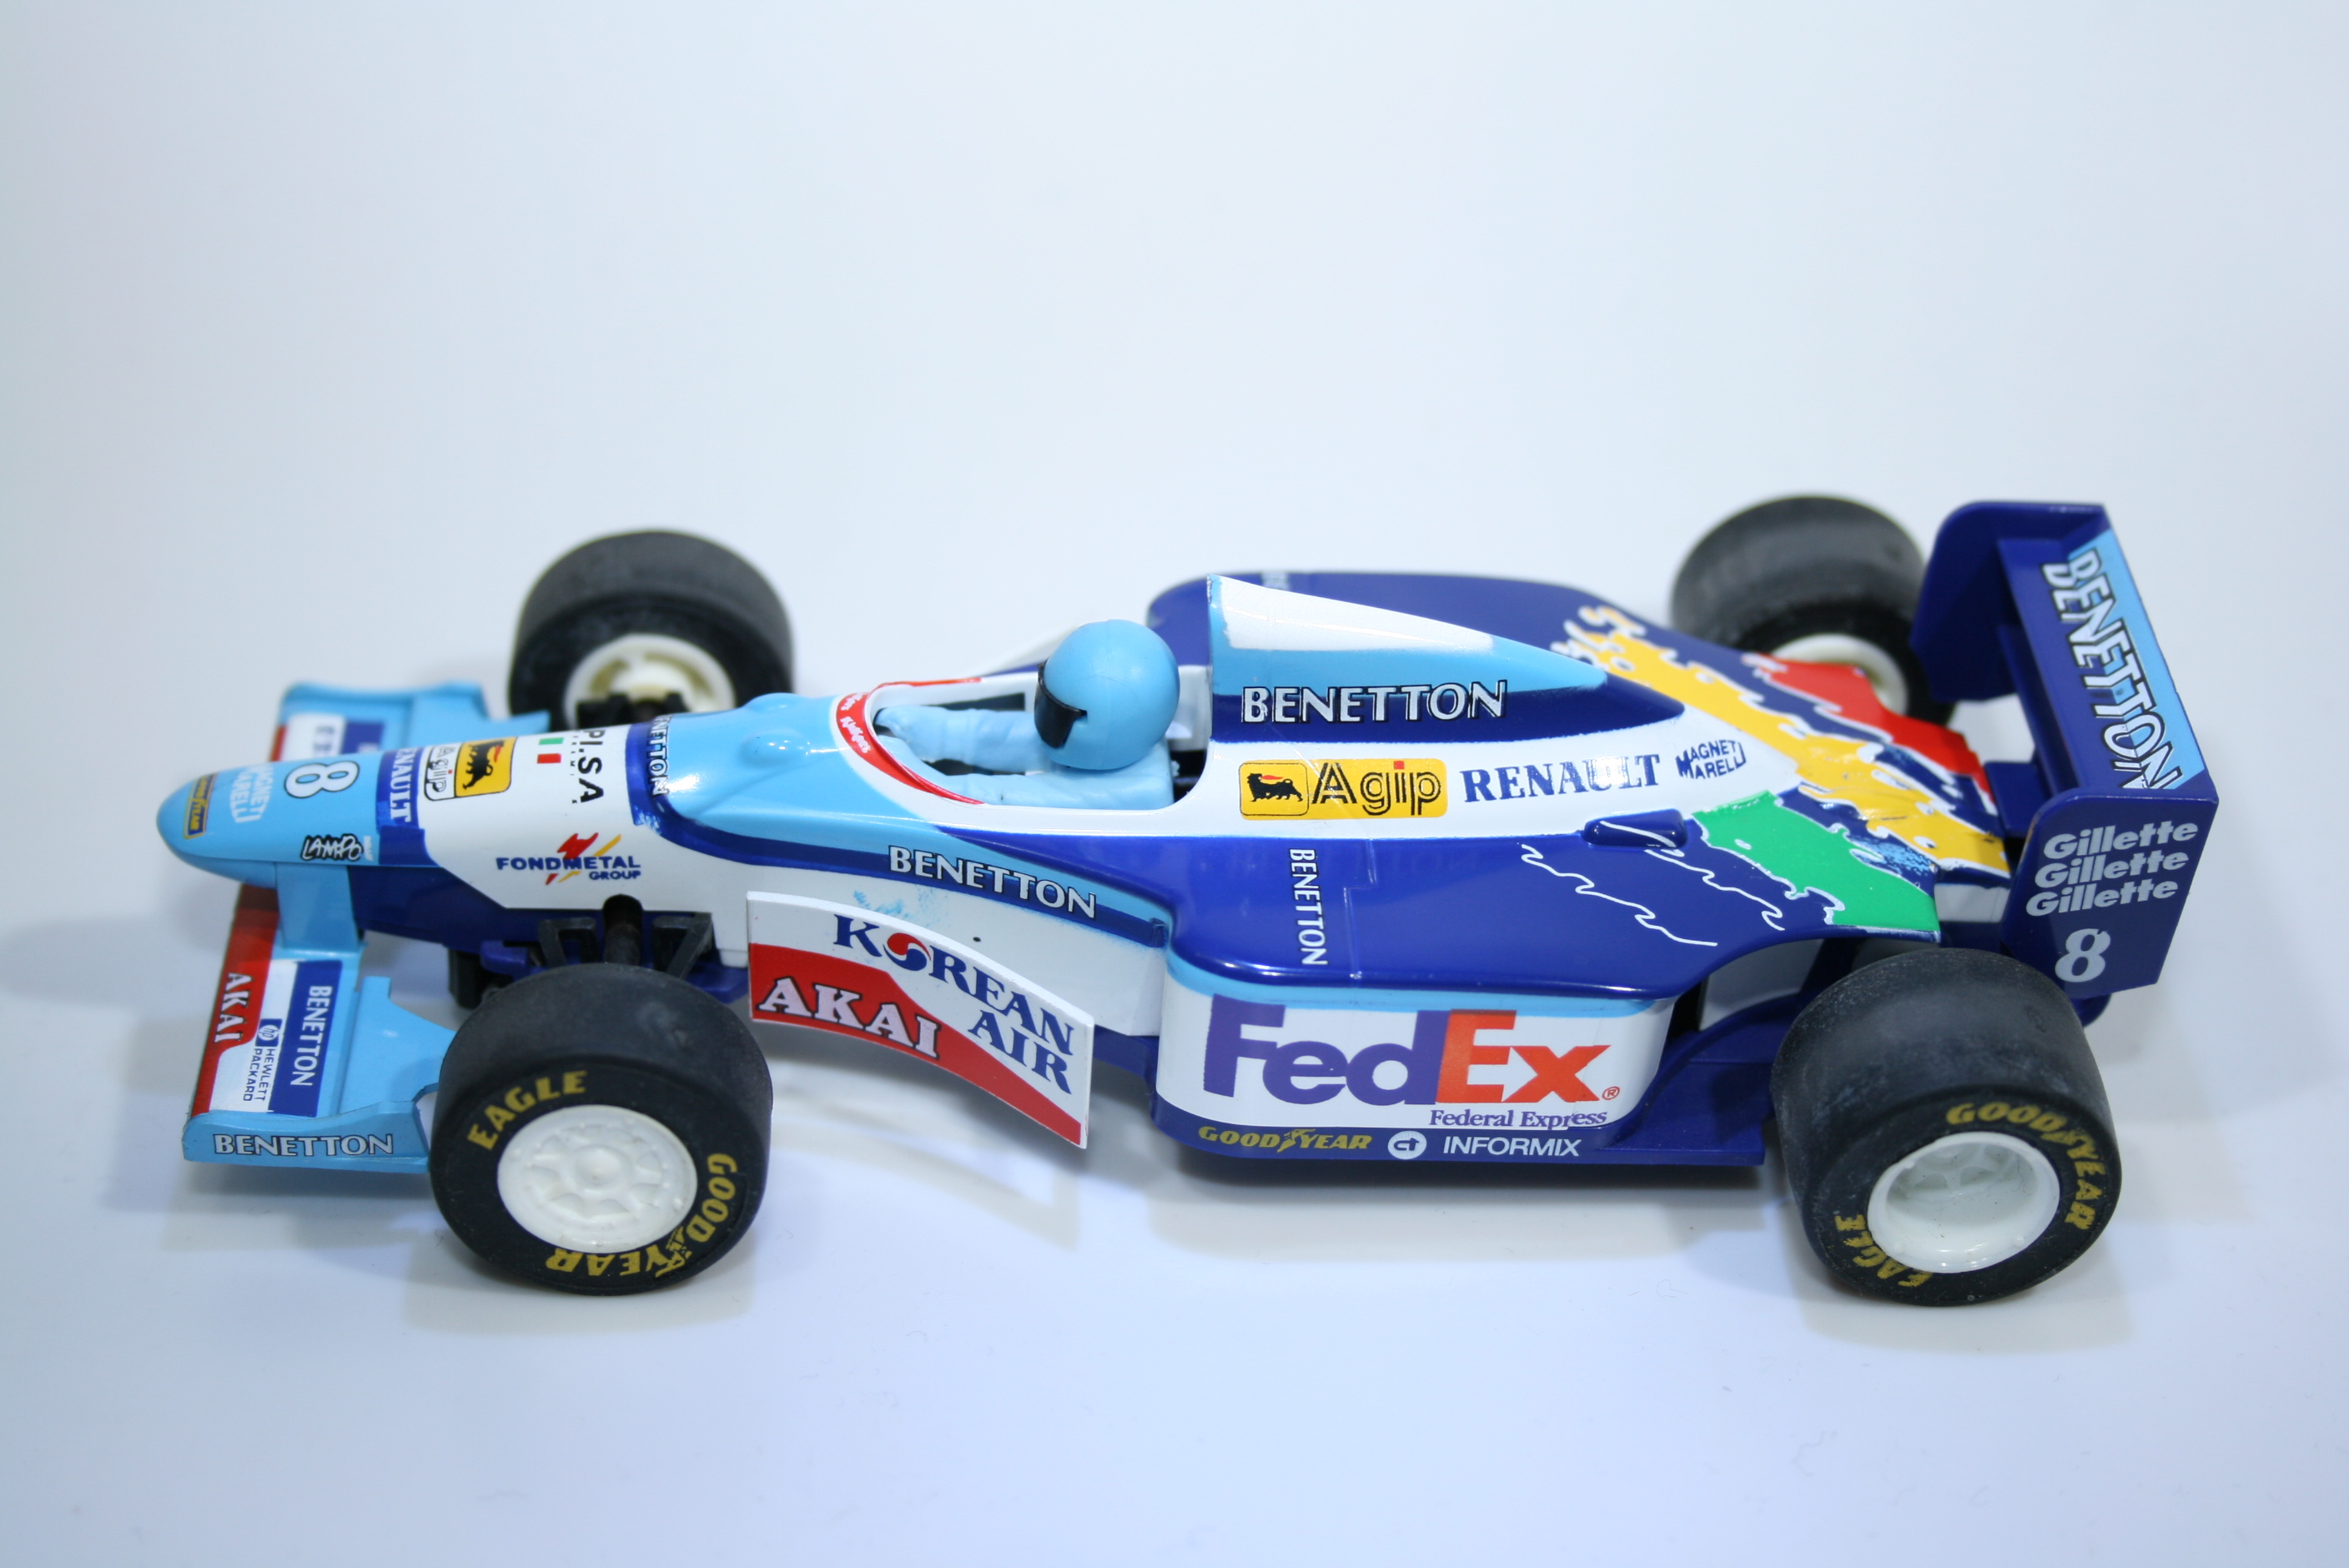 166 Benetton B197 1997 G Berger Scalextric C2106 L1 1998